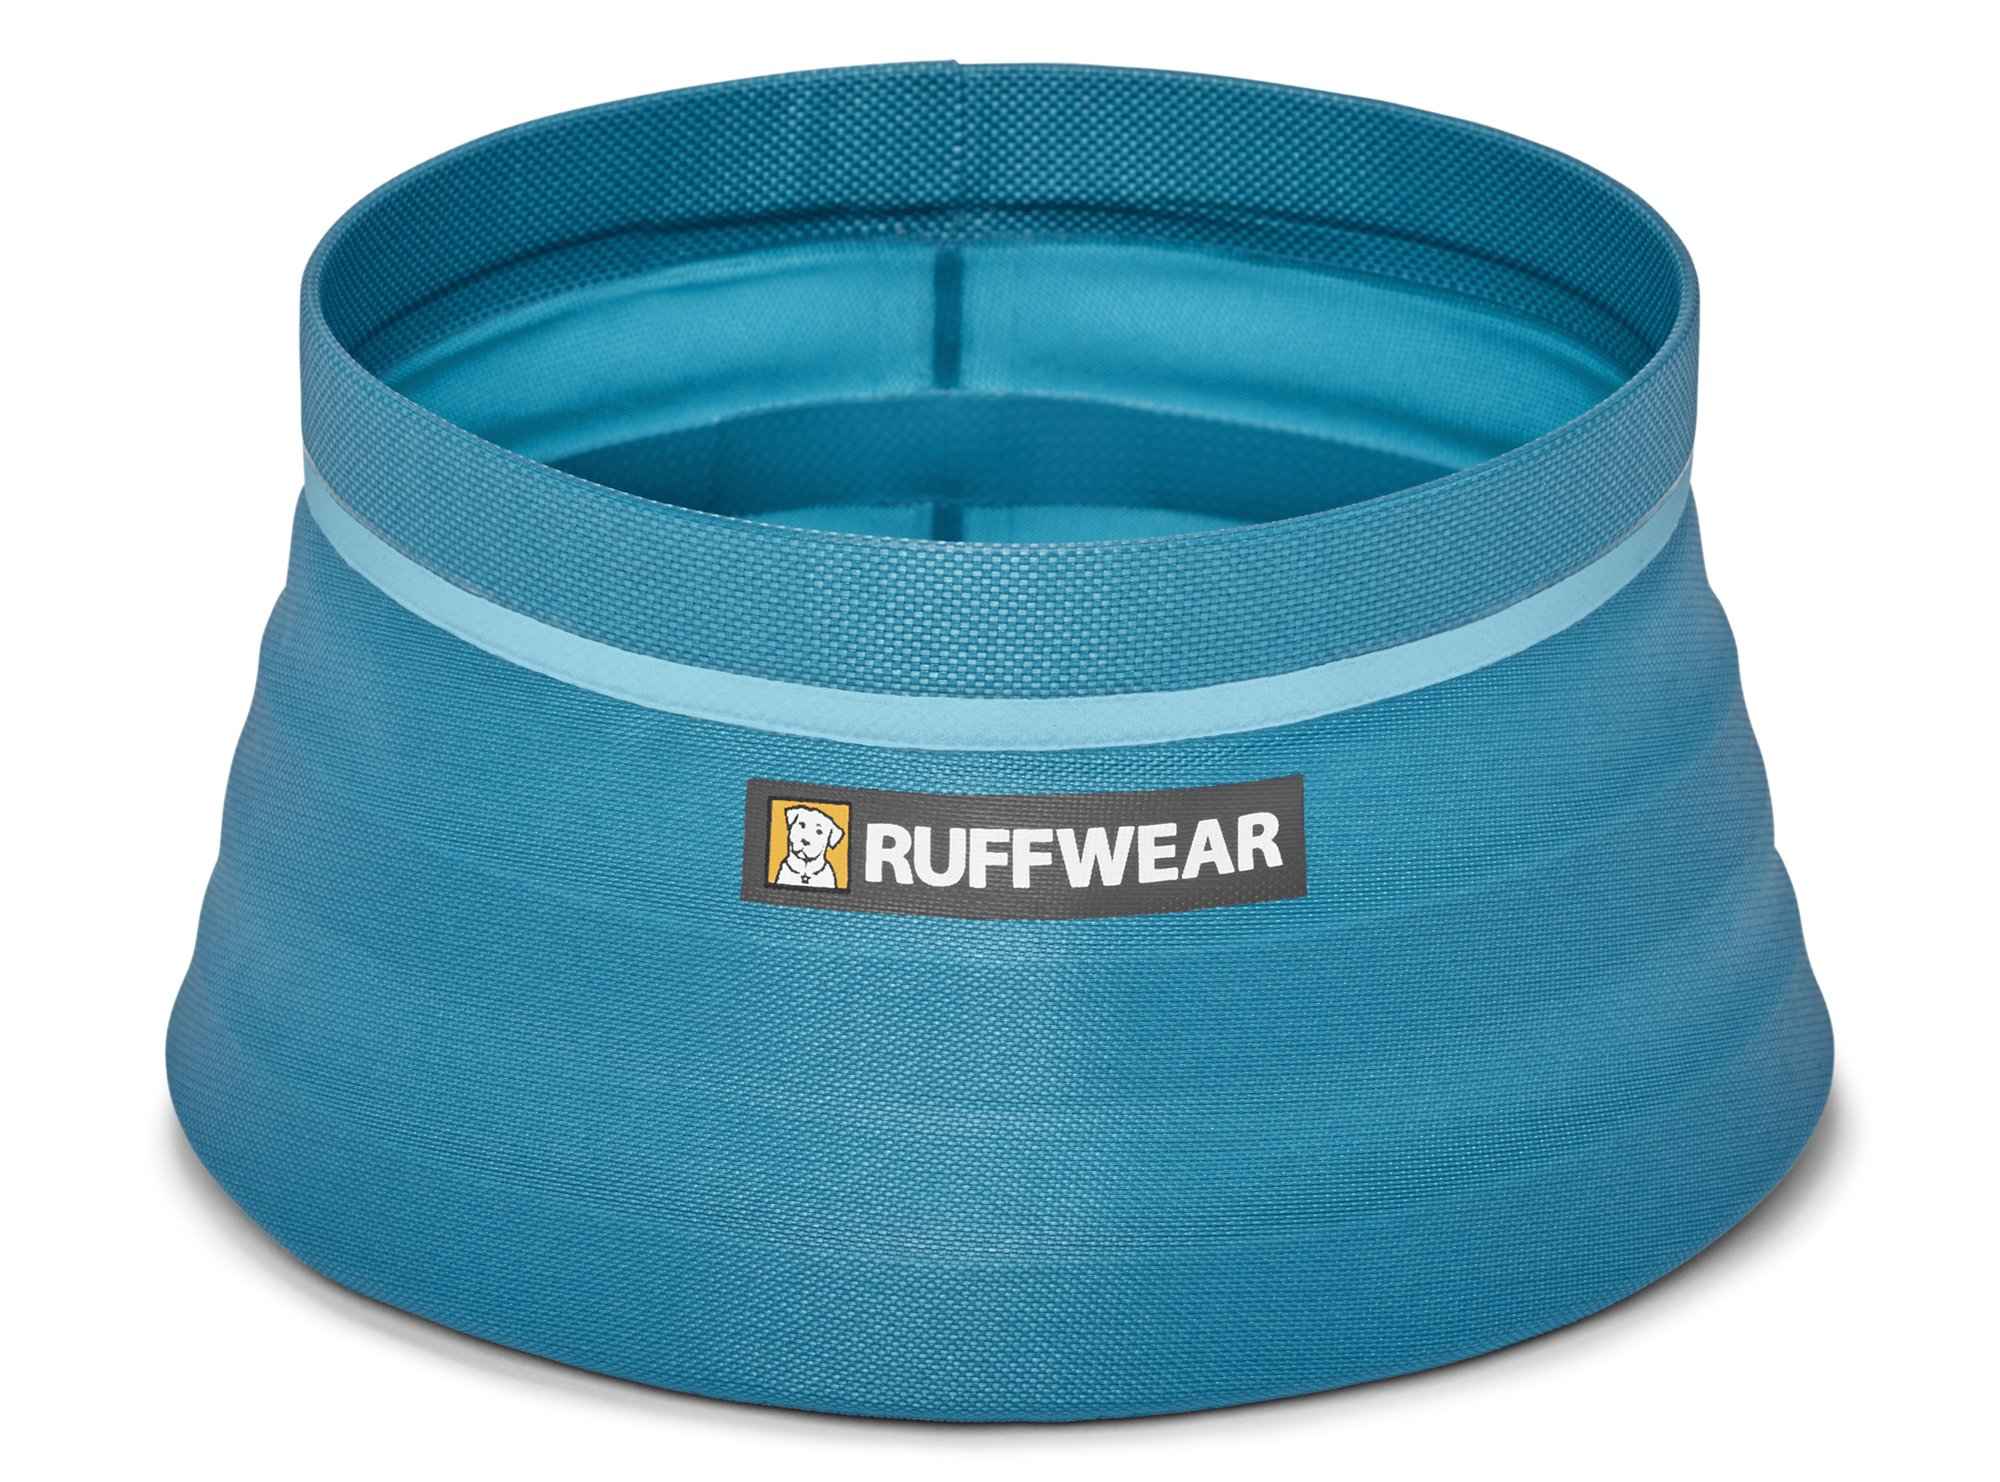 RUFFFWEAR Ruffwear - Bivy Collapsible Dog Bowl, Blue Spring, 60 Fluid Ounce Capacity, Blue Spring (2017)